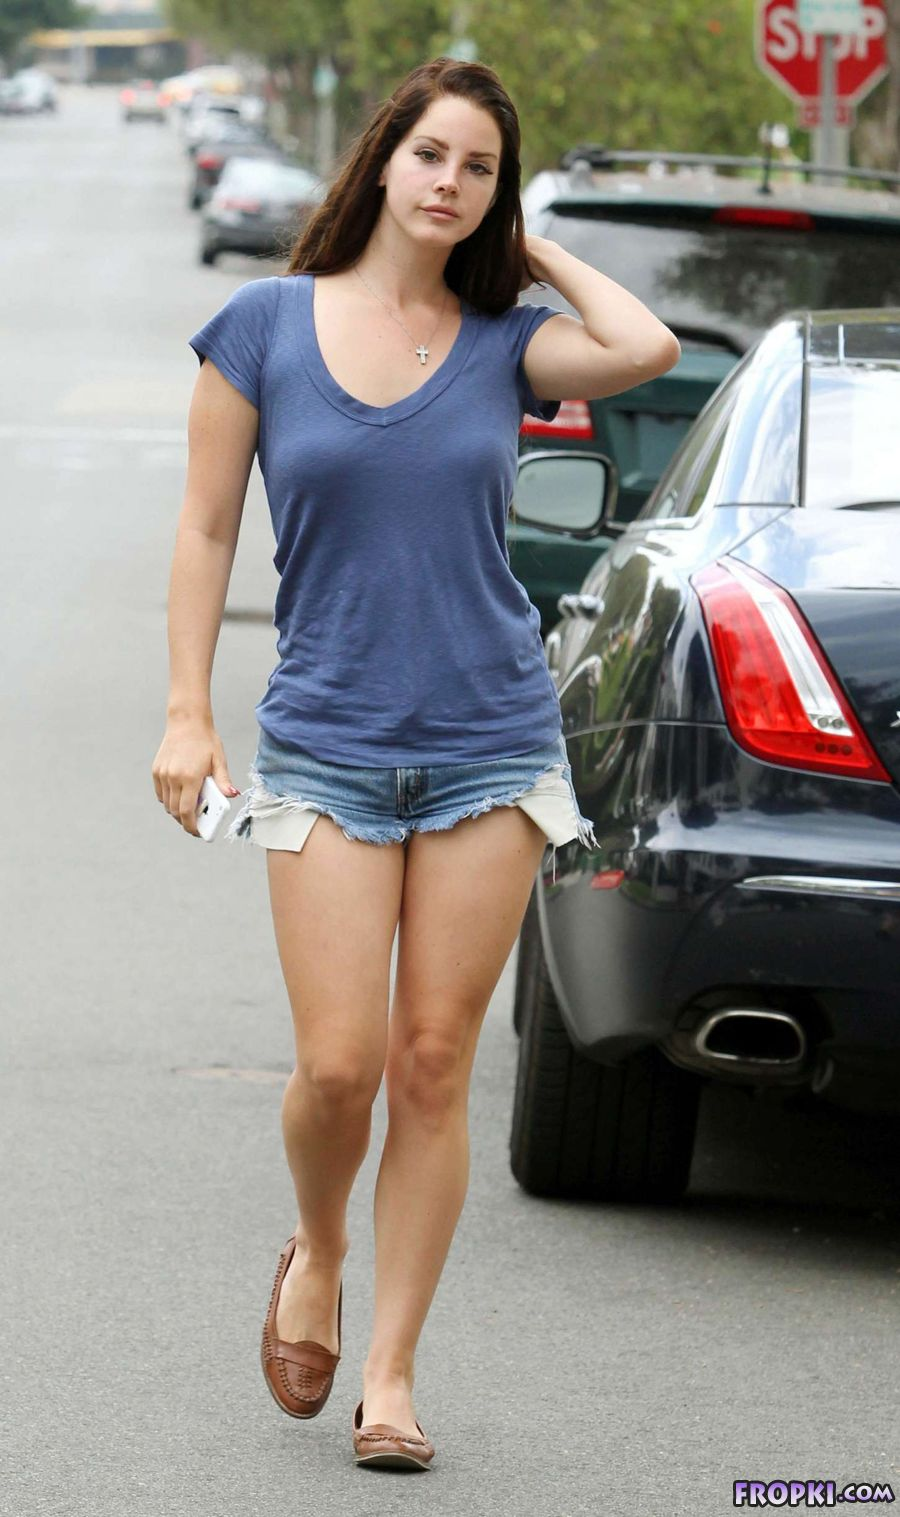 Lana Del Rey out and about in Los Angeles